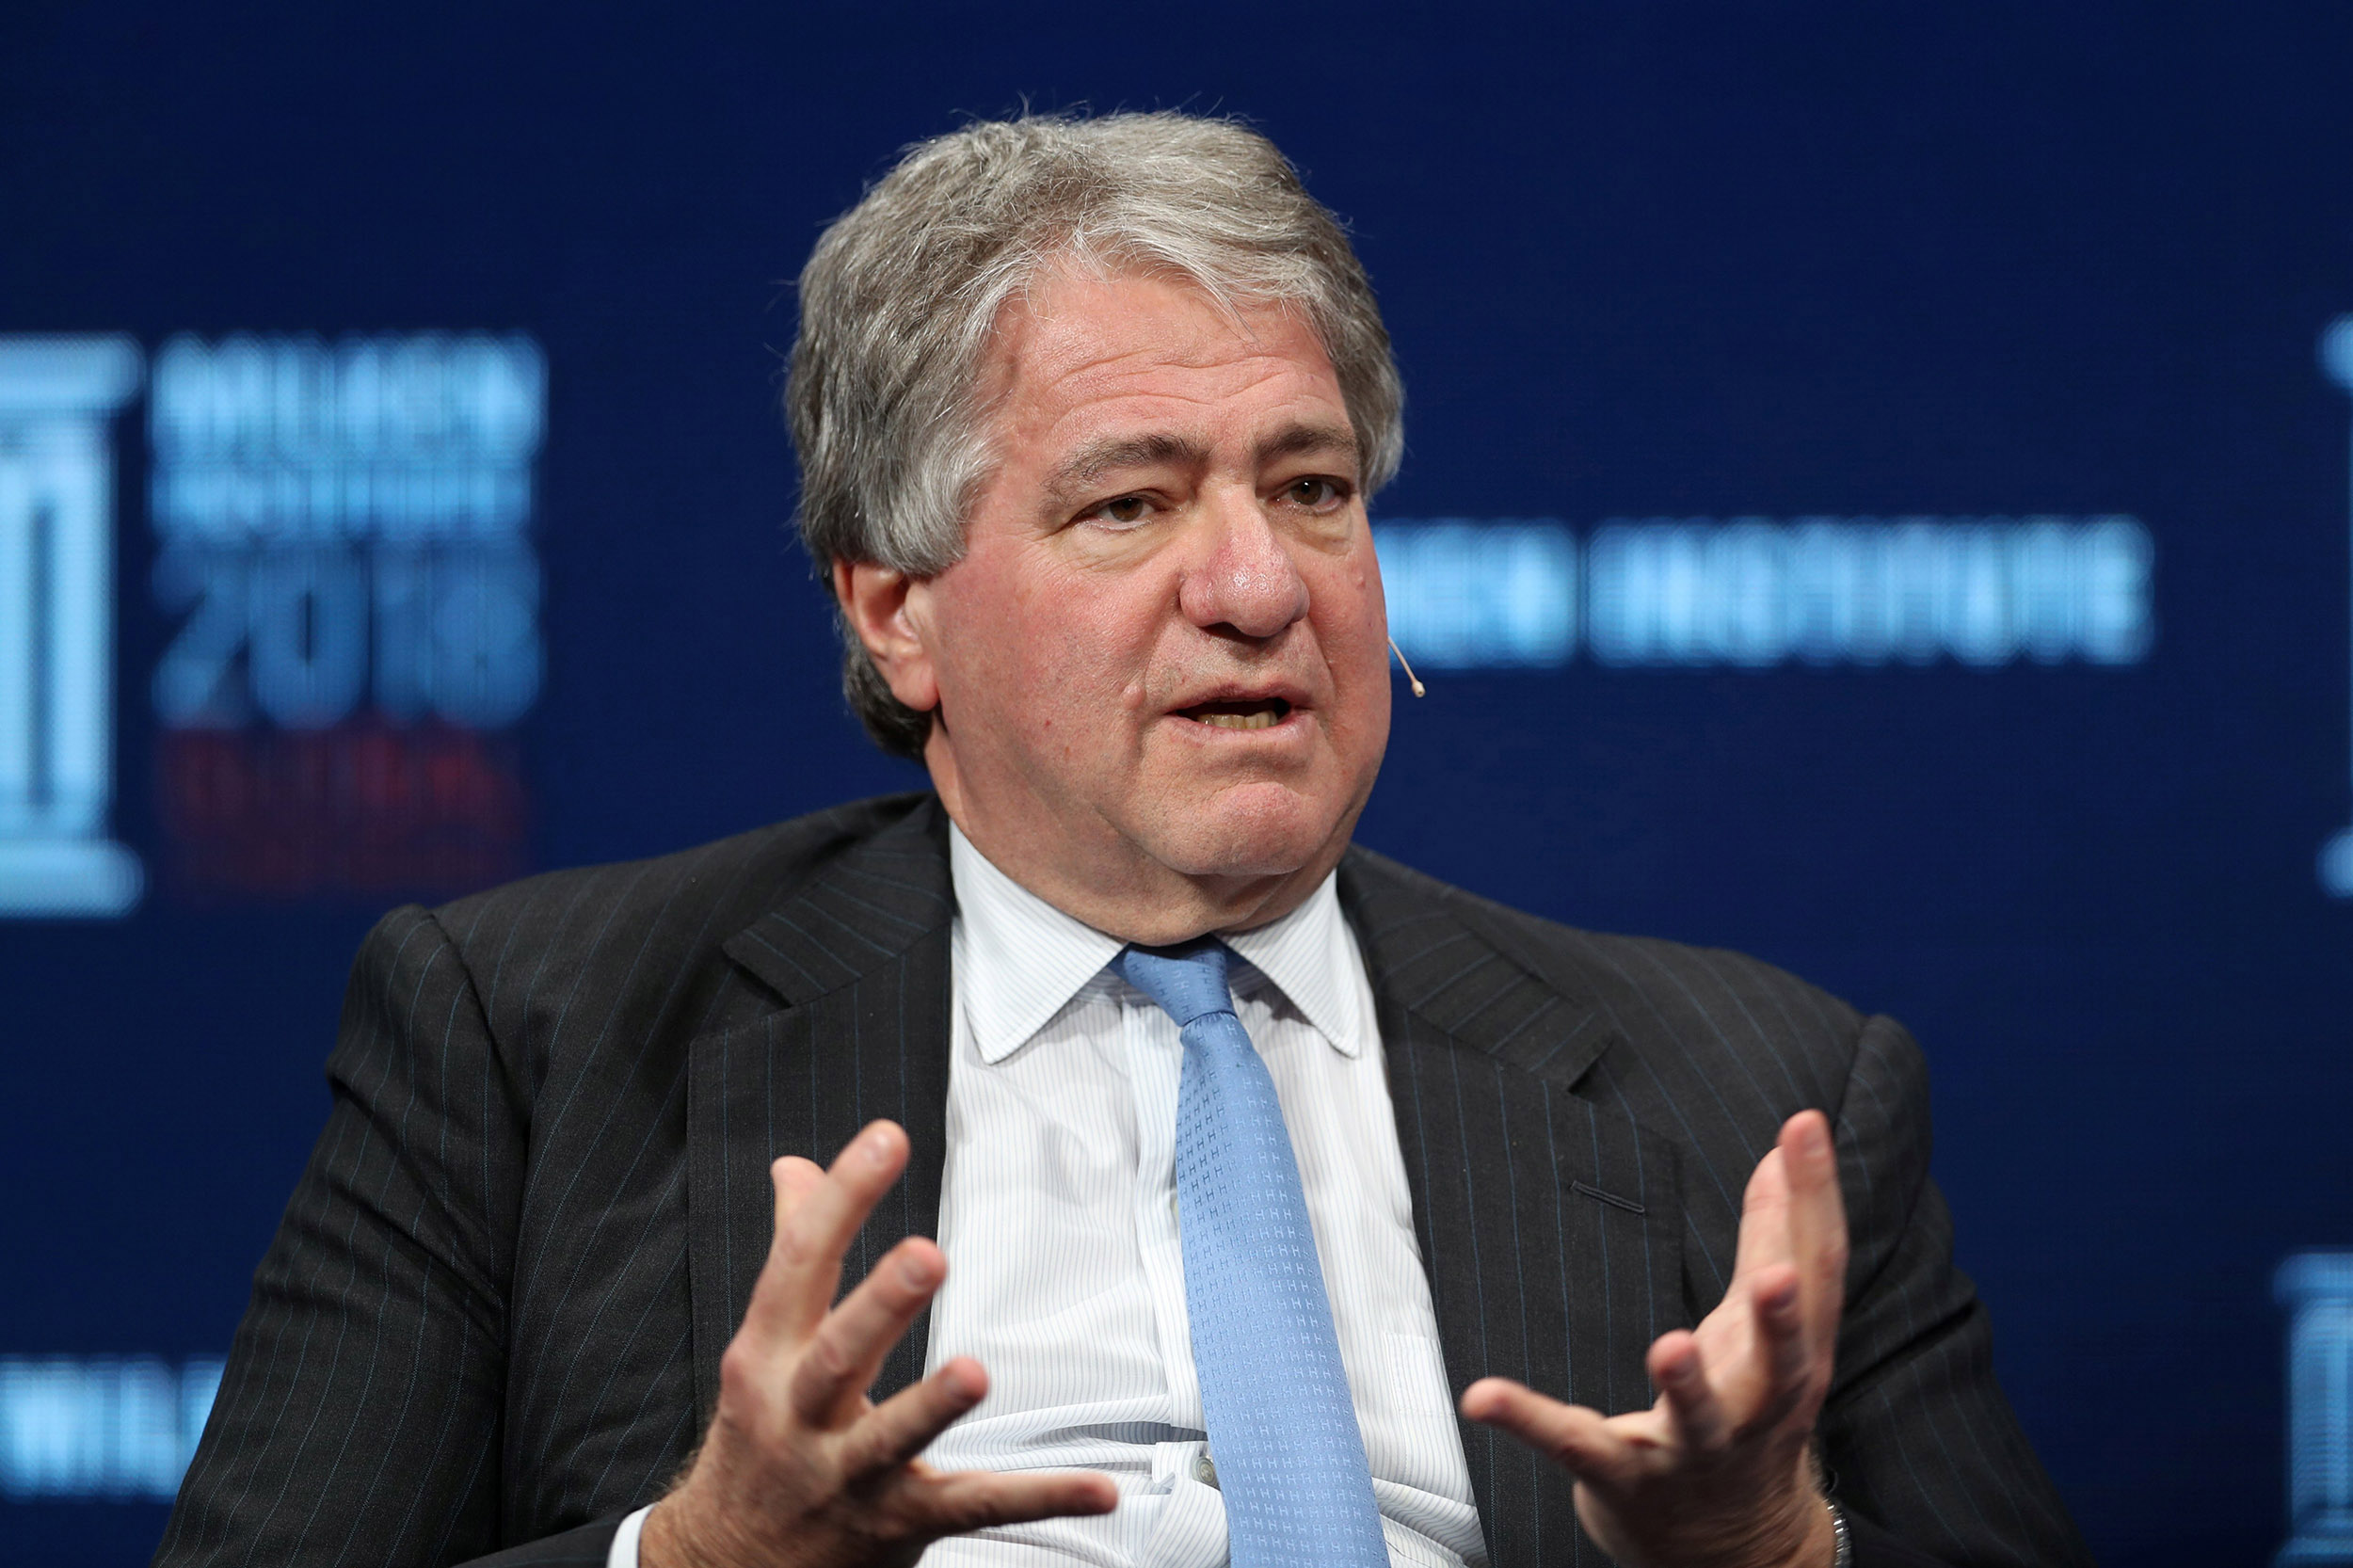 Leon Black, billionaire co-founder and CEO of Apollo hedge fund, steps down after review of ties to Epstein